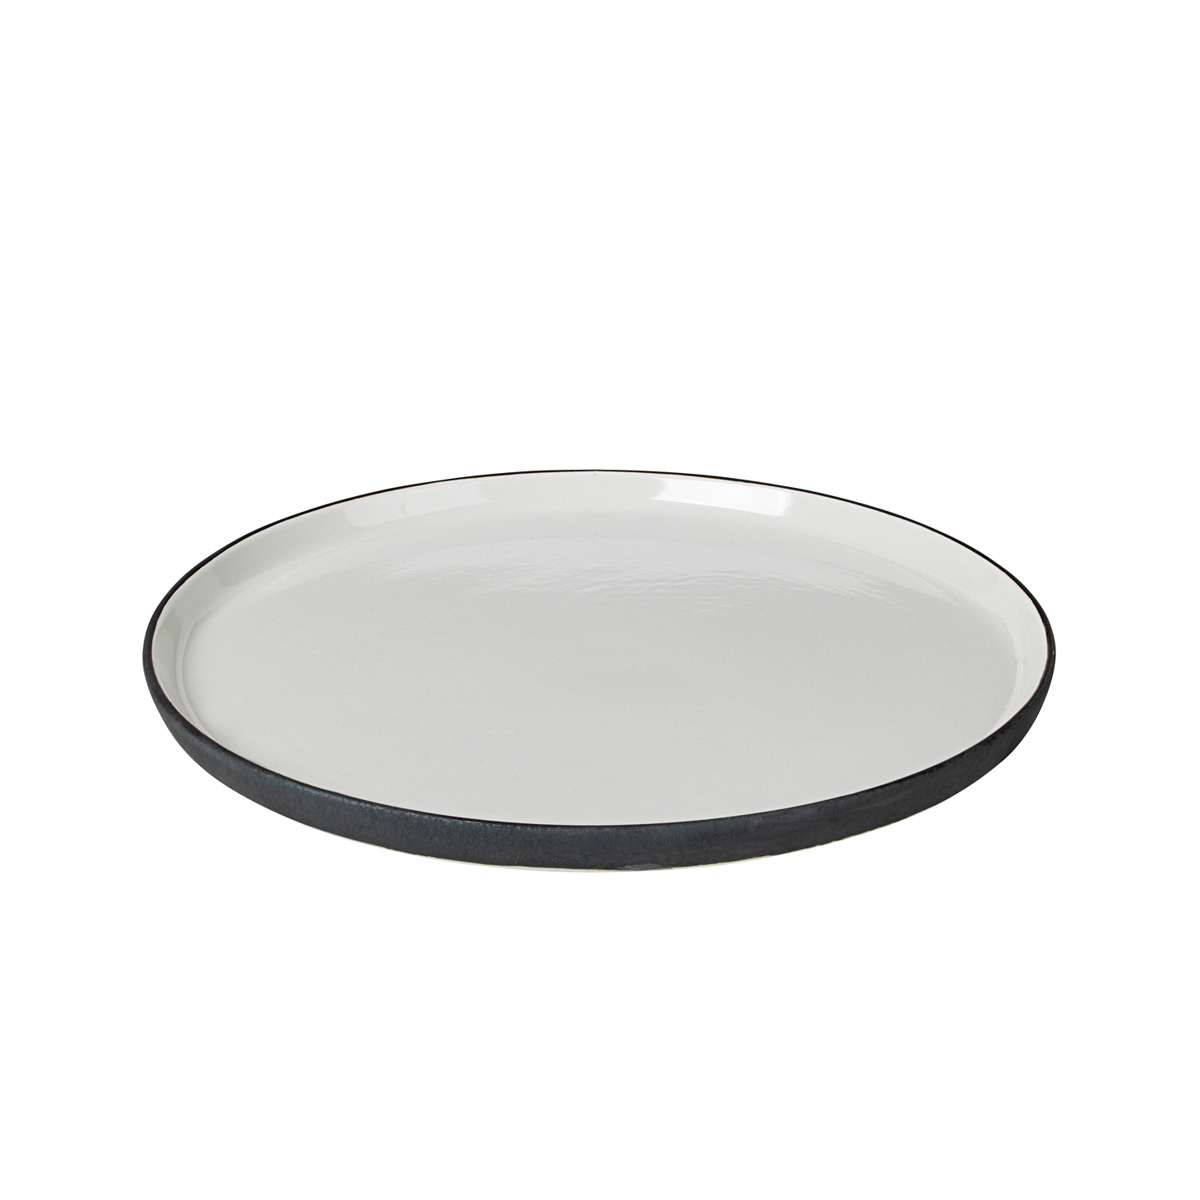 esrum-broste-side-plate